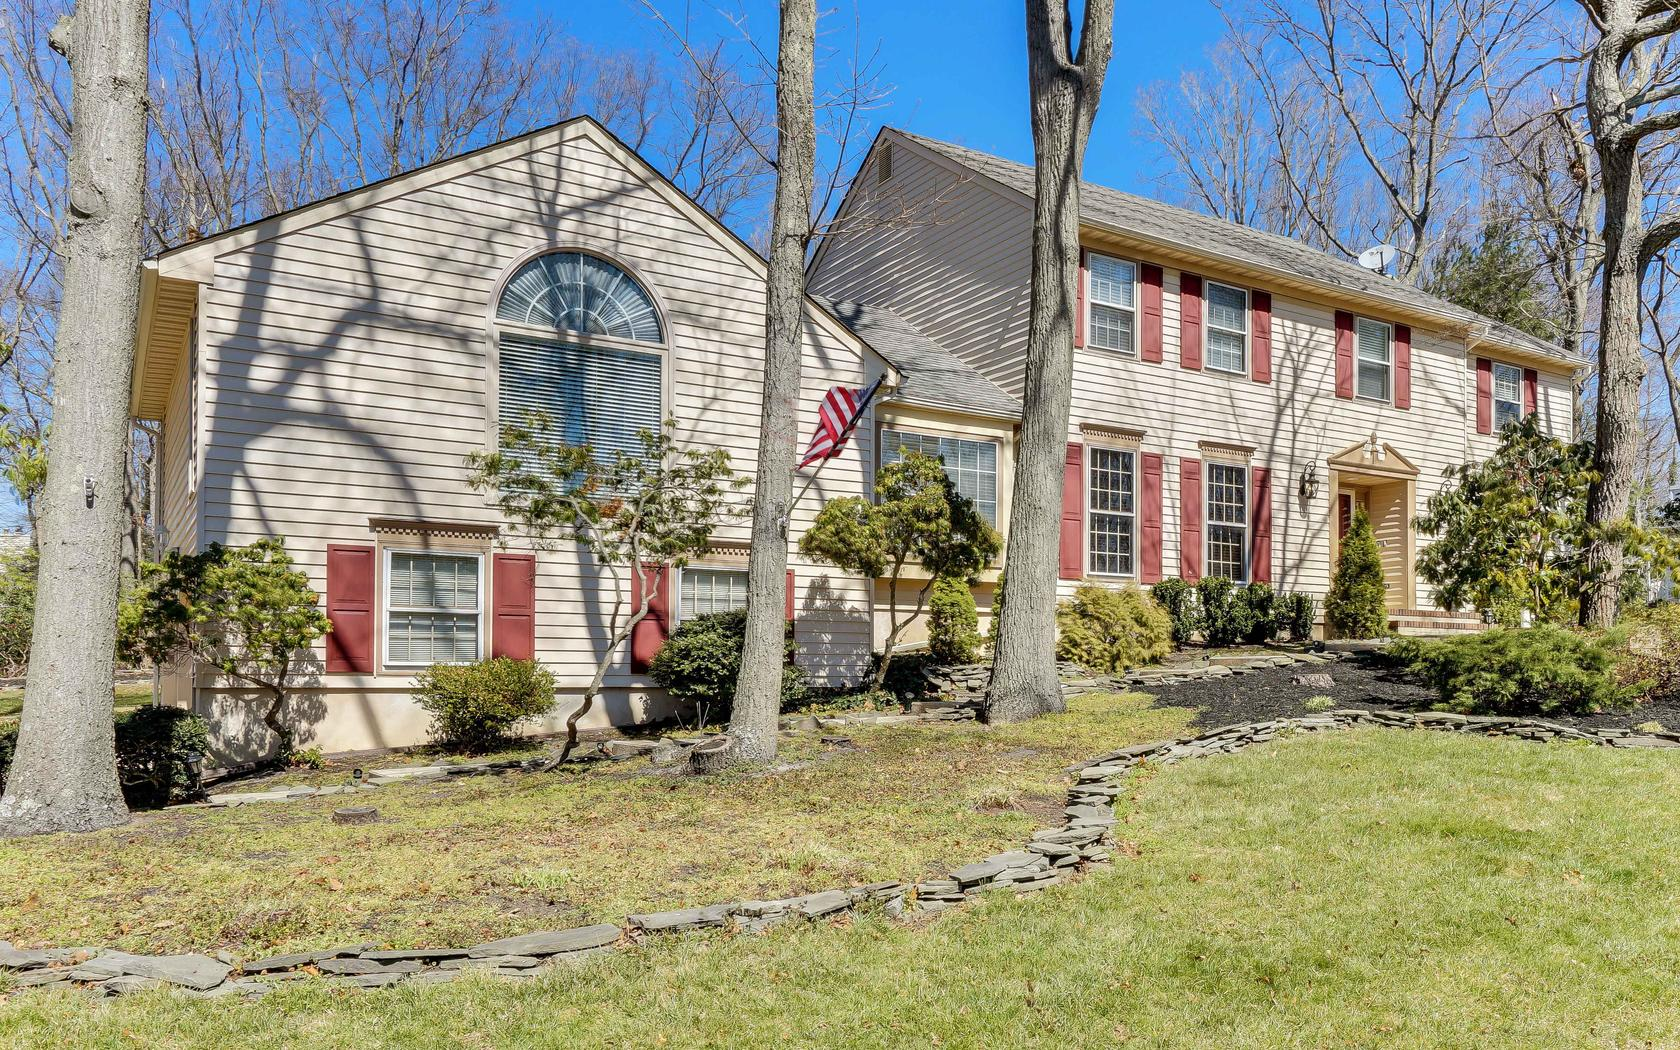 Single Family Home for Sale at Spacious Manasquan Colonial 1530 Toboggan Run Manasquan, New Jersey 08736 United States